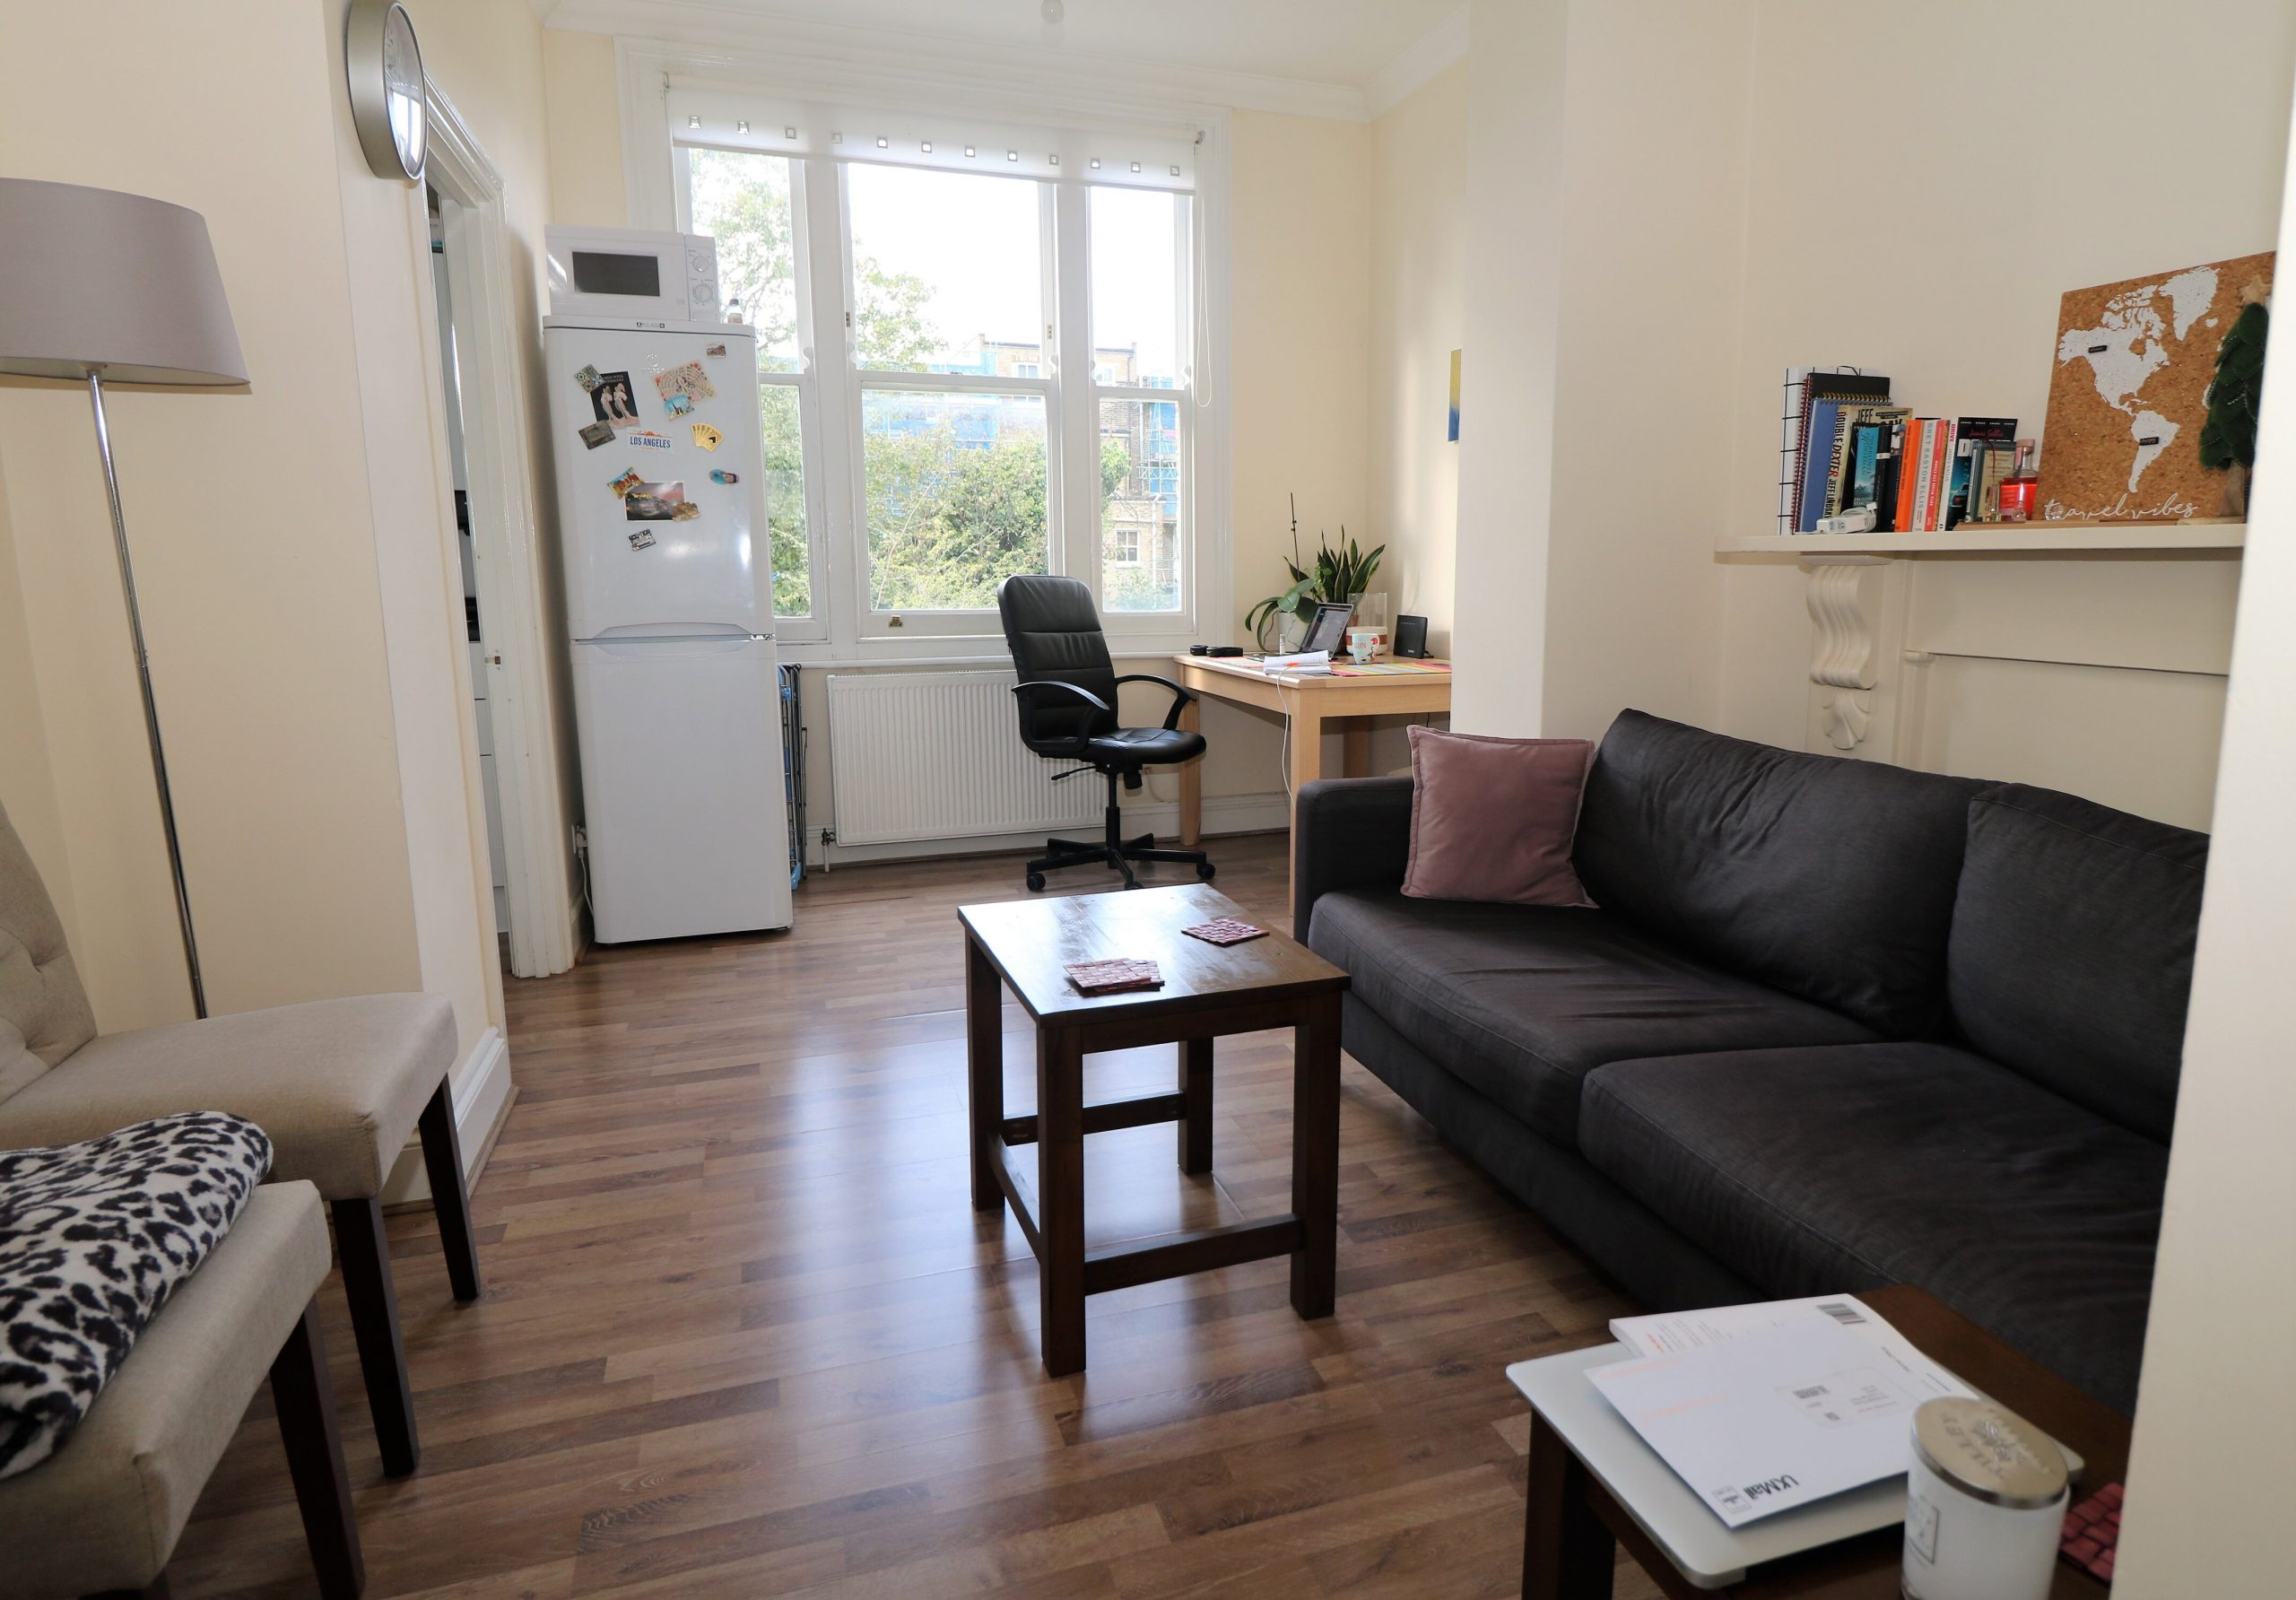 First floor 2 double bedroom flat in Islington, N4. Wood floors, separate lounge and kitchen great condition near zone 2 tube